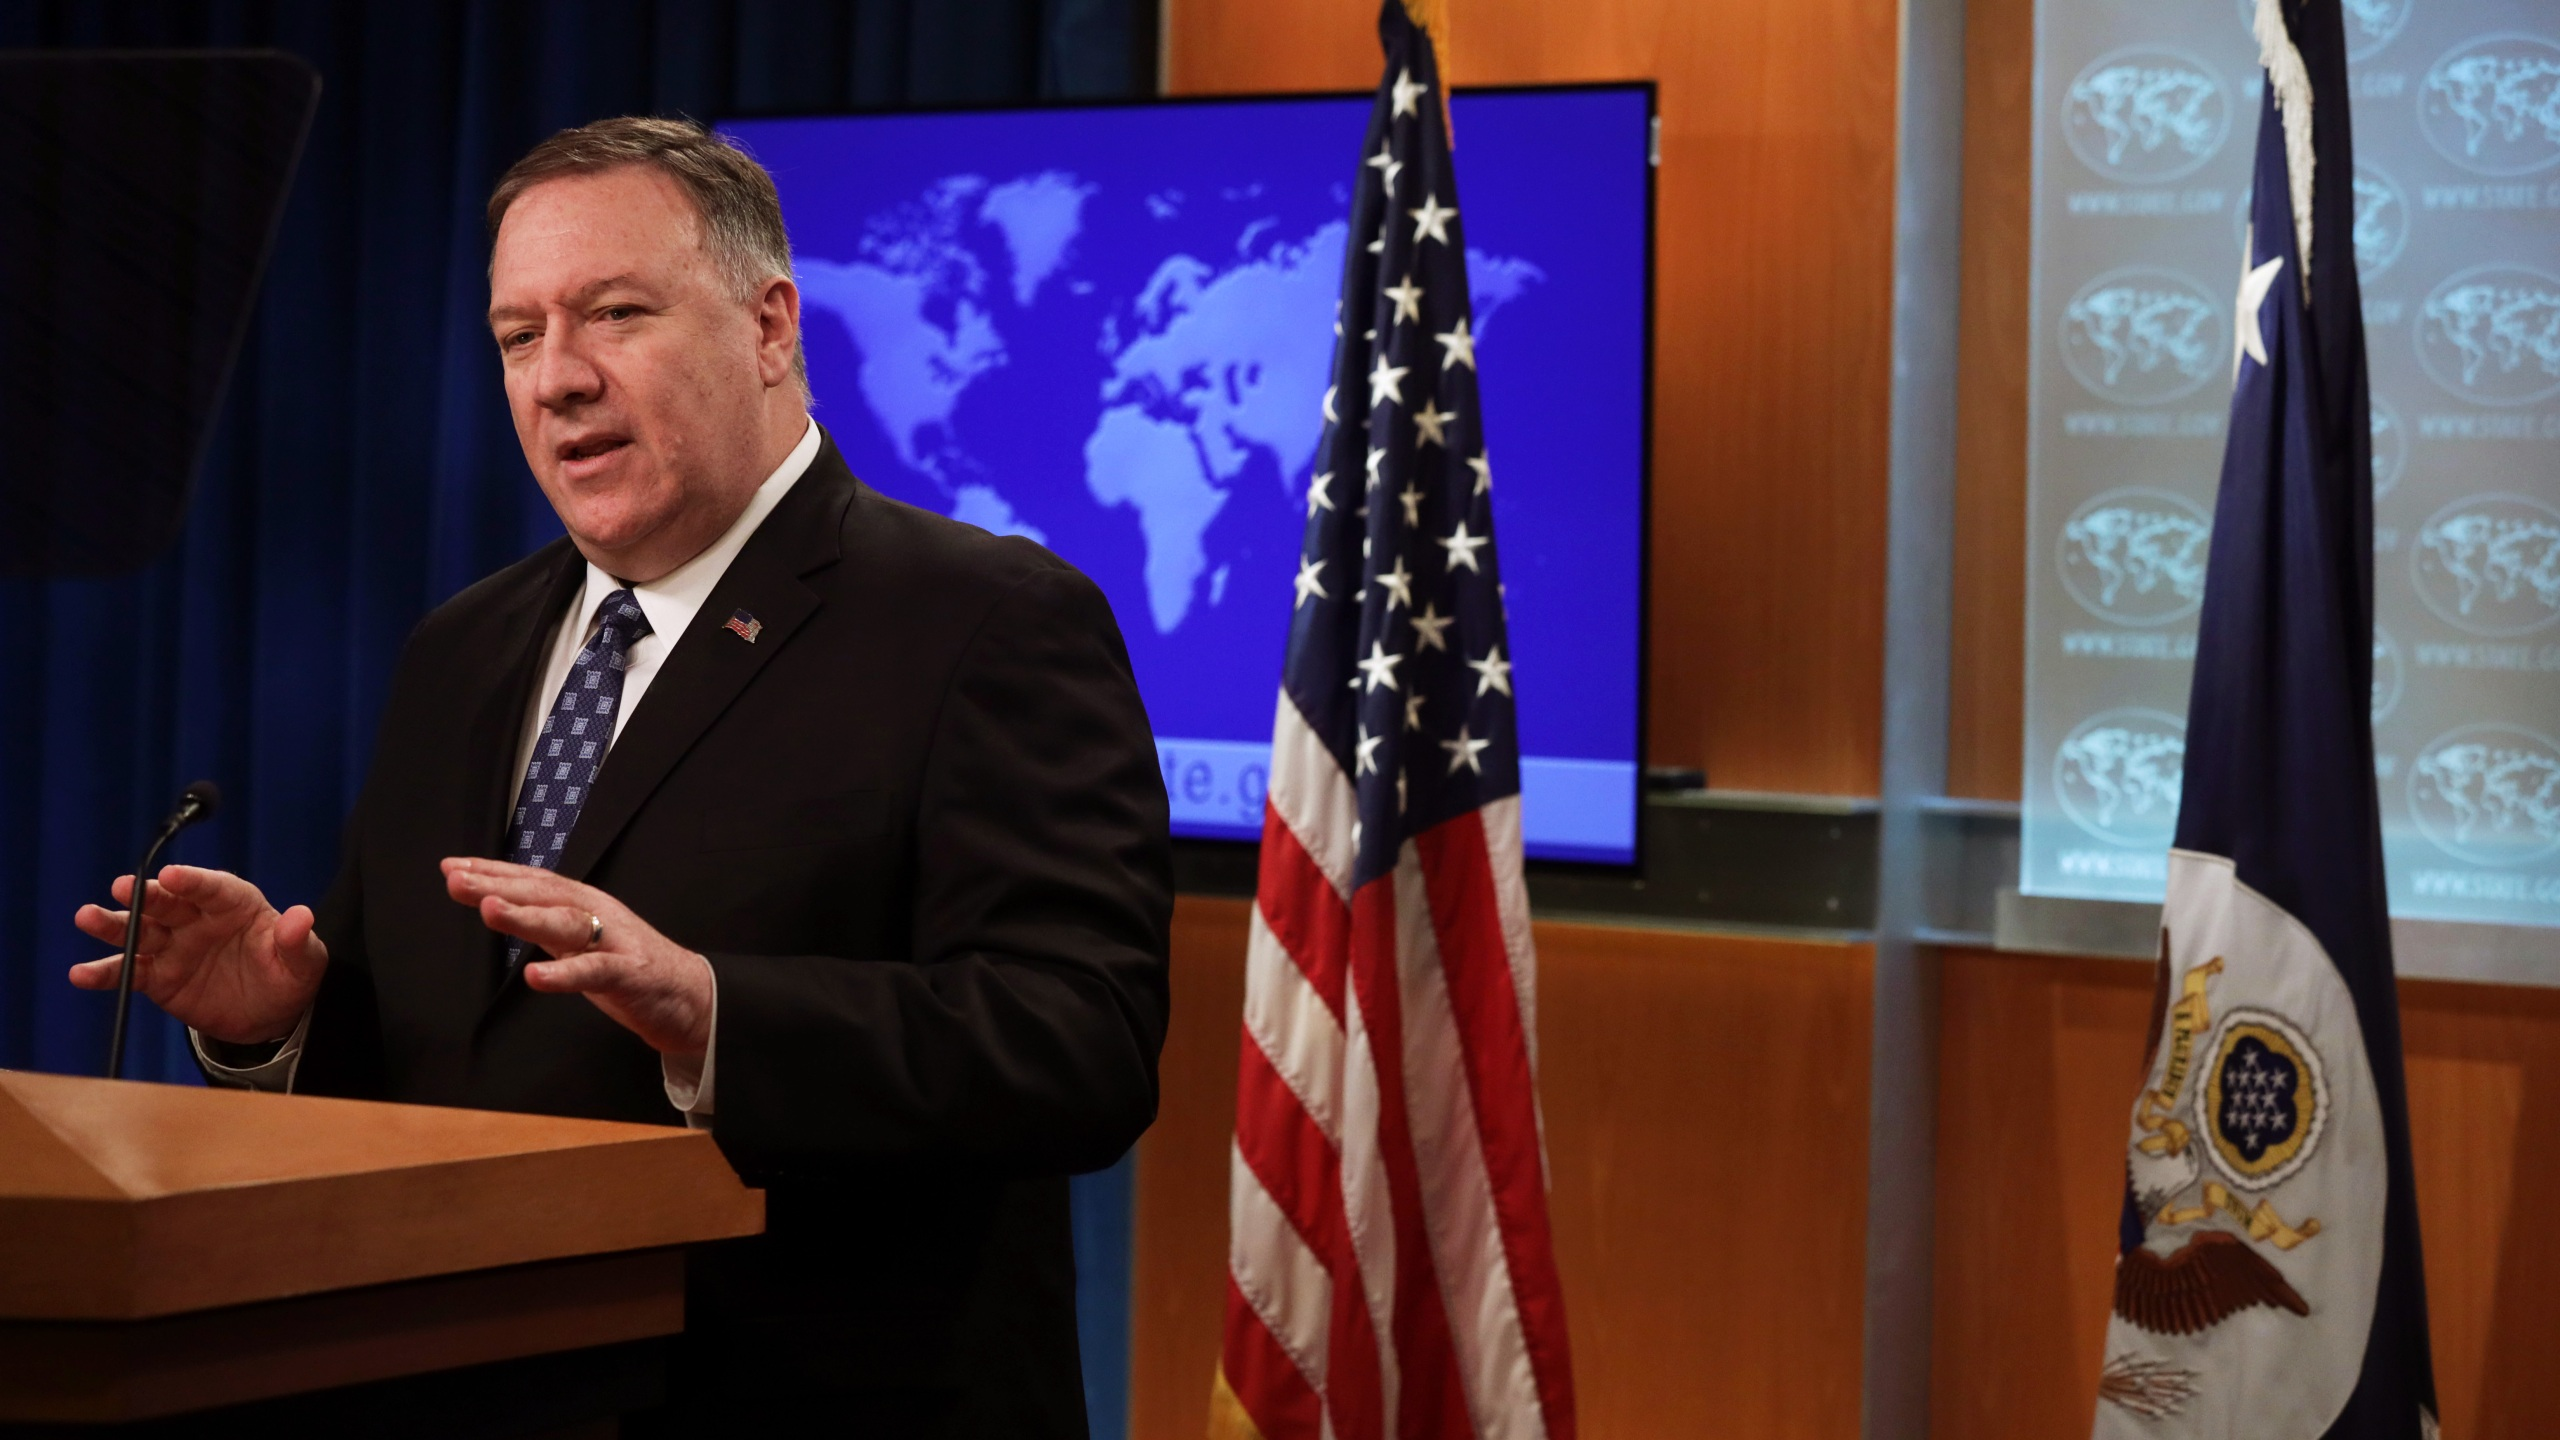 U.S. Secretary of State Mike Pompeo speaks during a news briefing at the State Department Feb. 25, 2020, in Washington, D.C. He discussed the coronavirus and U.S. efforts to combat it among other issues. (Alex Wong/Getty Images)